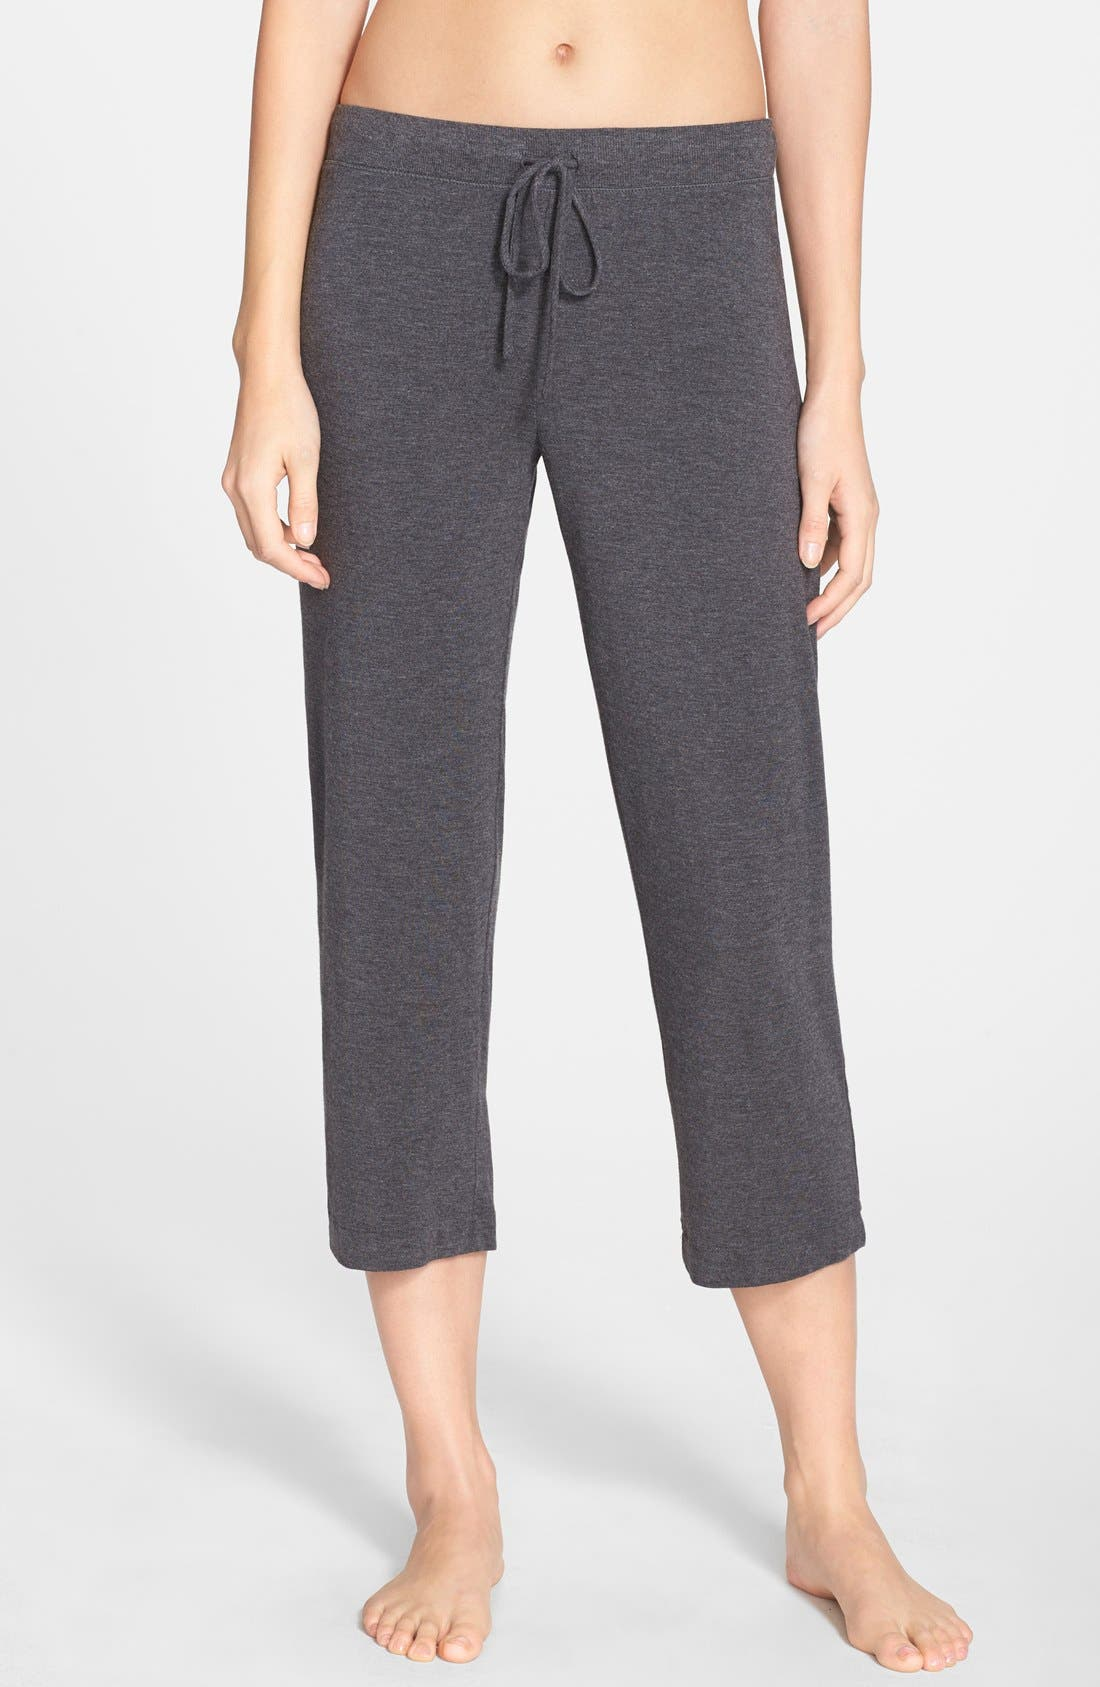 DKNY 'Urban Essentials' Capri Pants